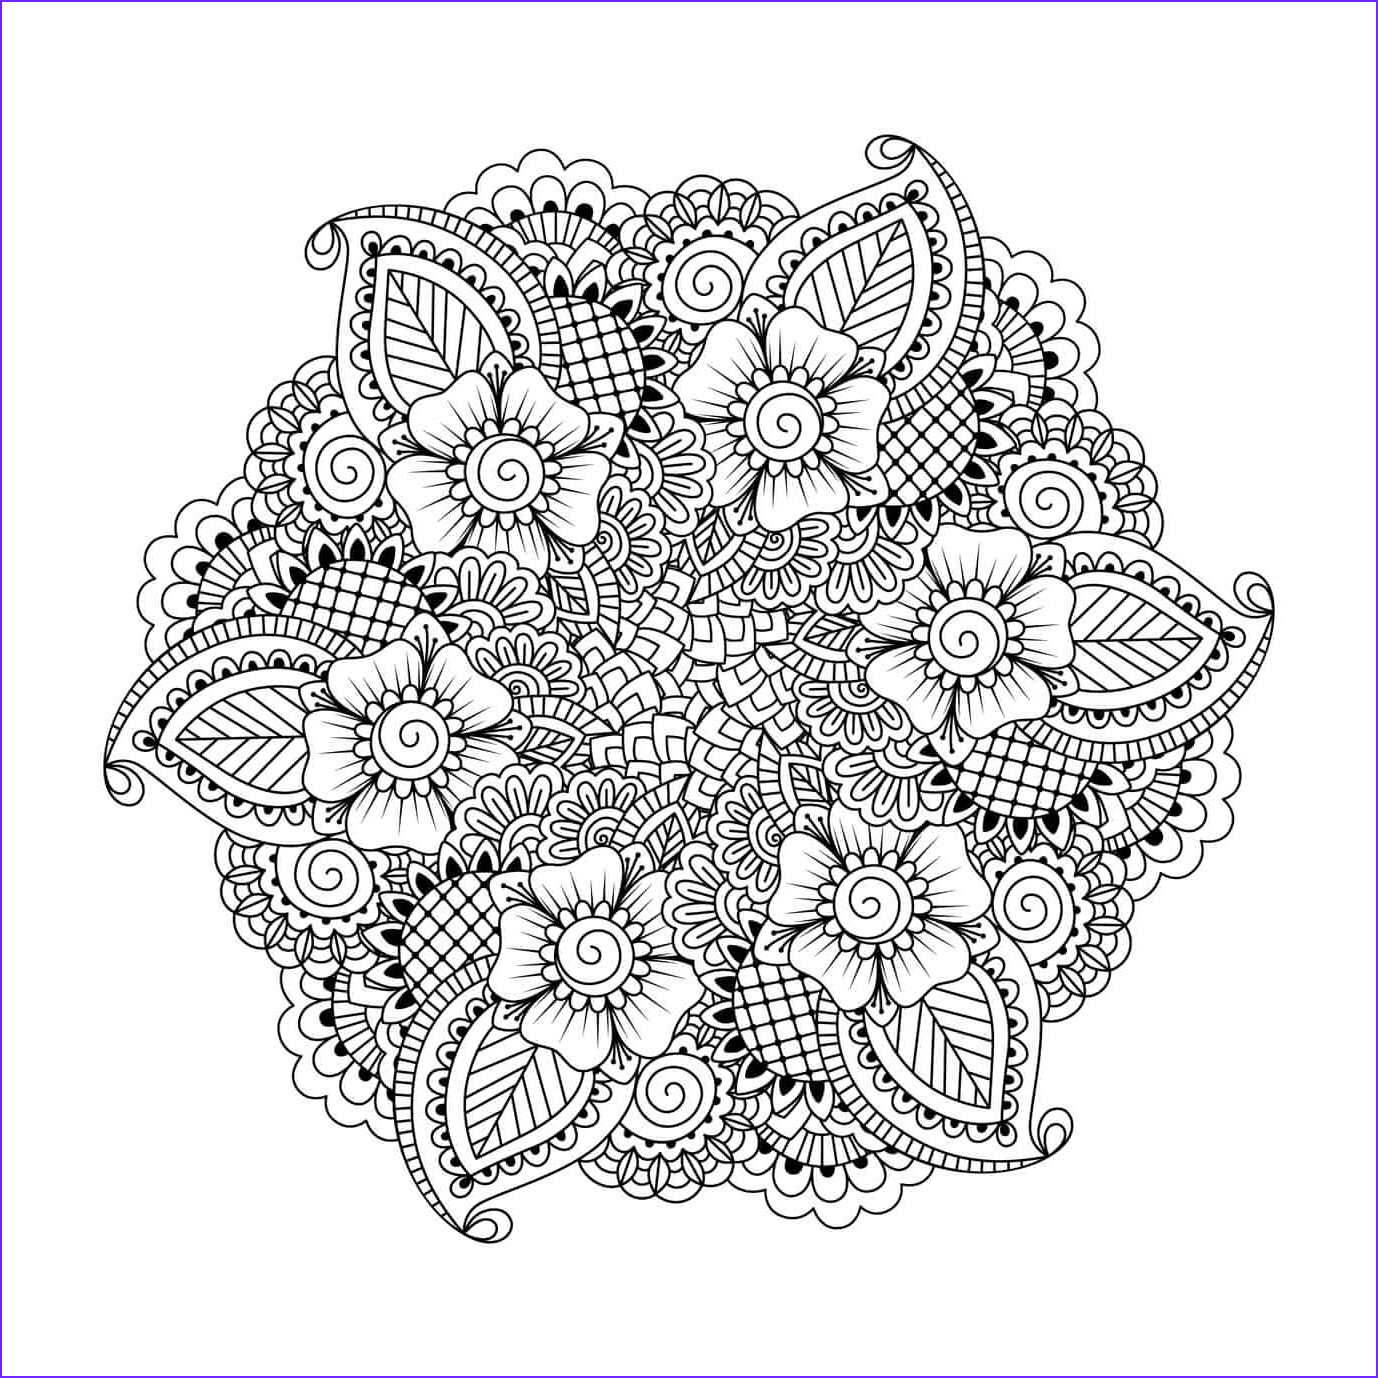 Stress Relieving Coloring Pages Luxury Stock these Printable Abstract Coloring Pages Relieve Stress and